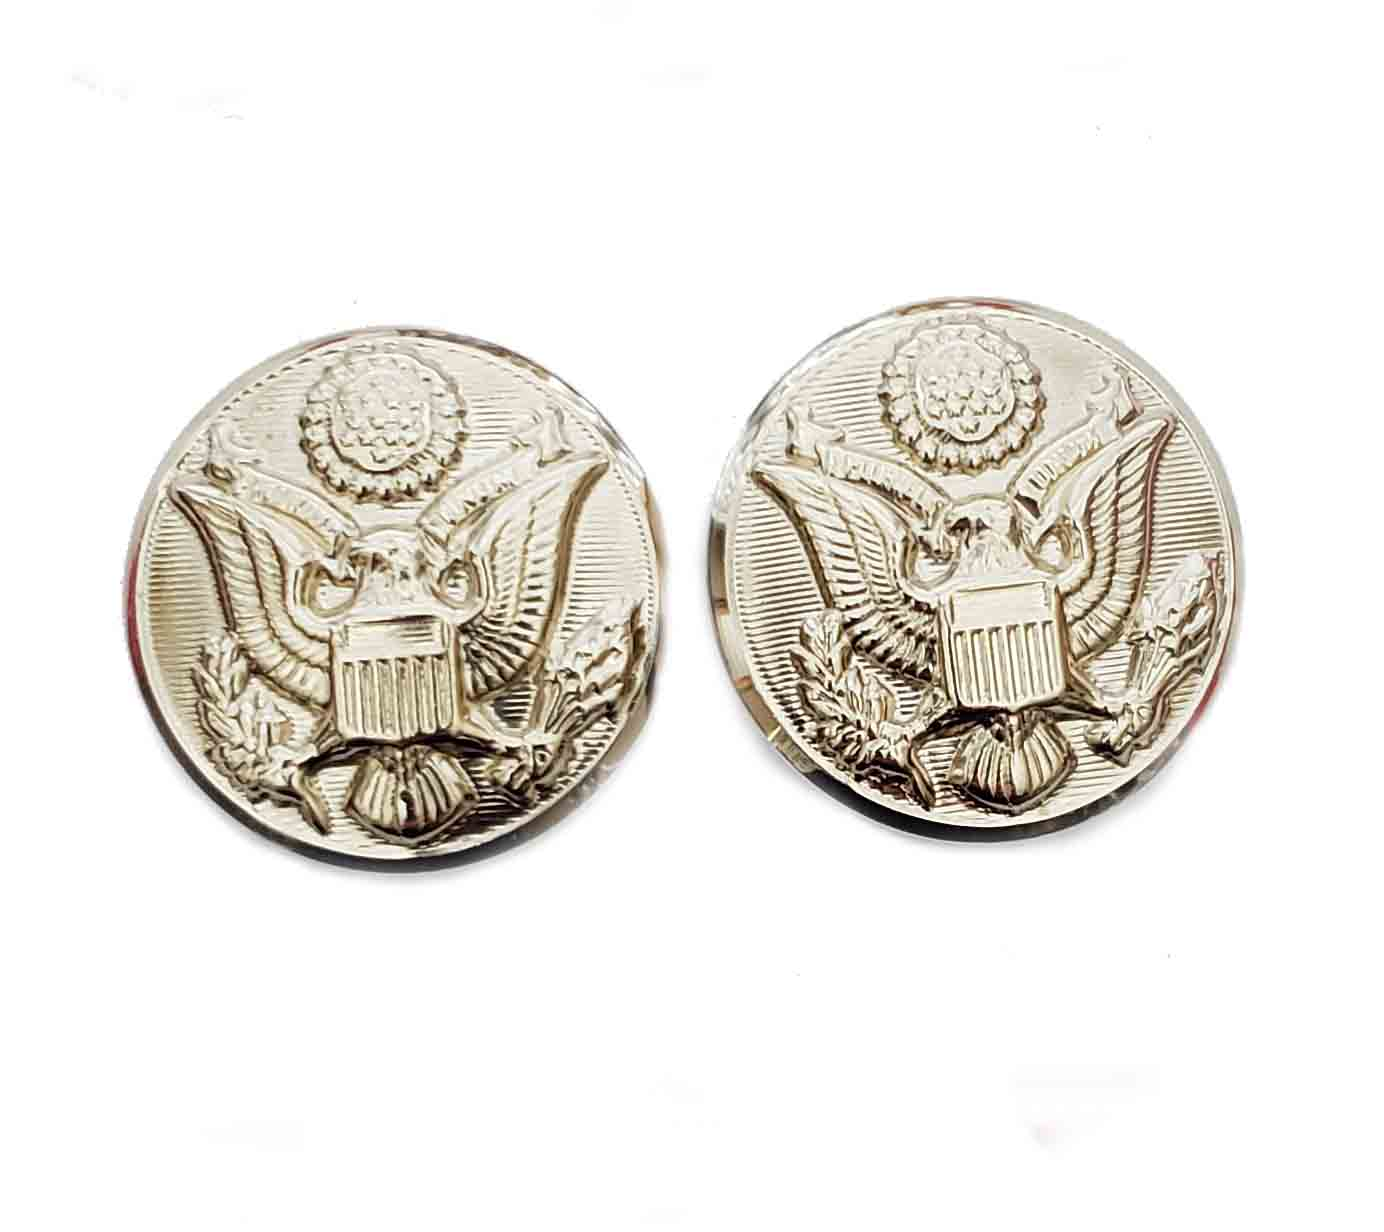 Two Waterbury Military Style Eagle Emblem Gold Brass Military Style Blazer Buttons Shank Men's